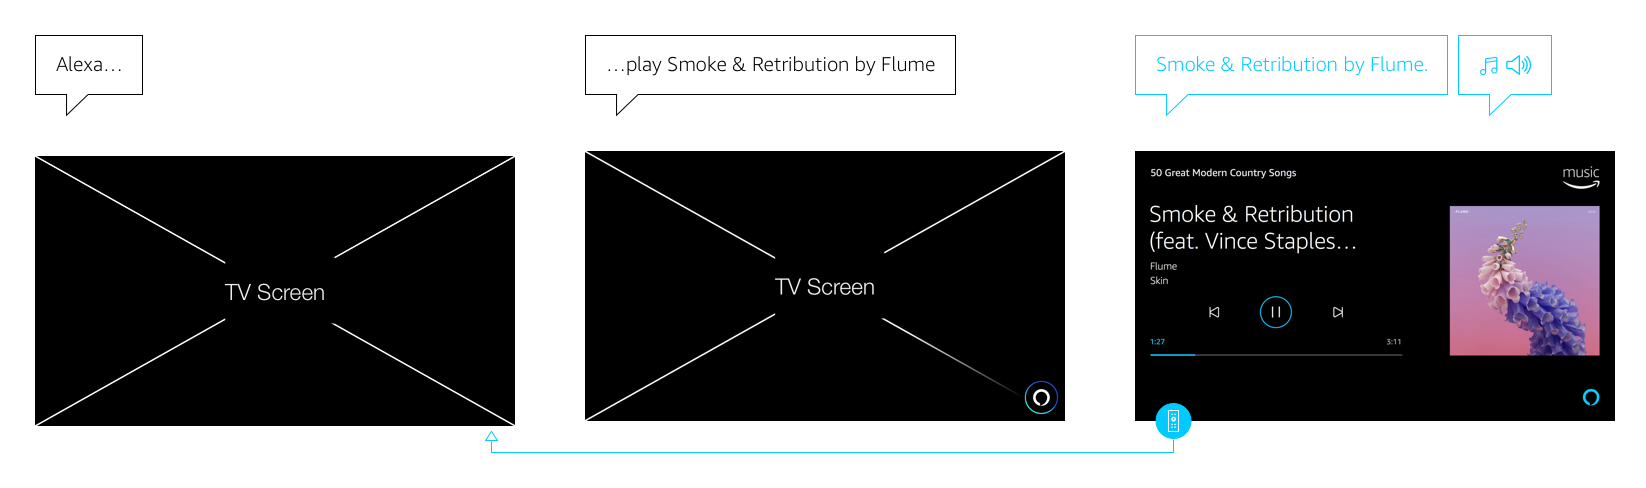 Alexa Display Cards for TV: NowPlaying Interactions